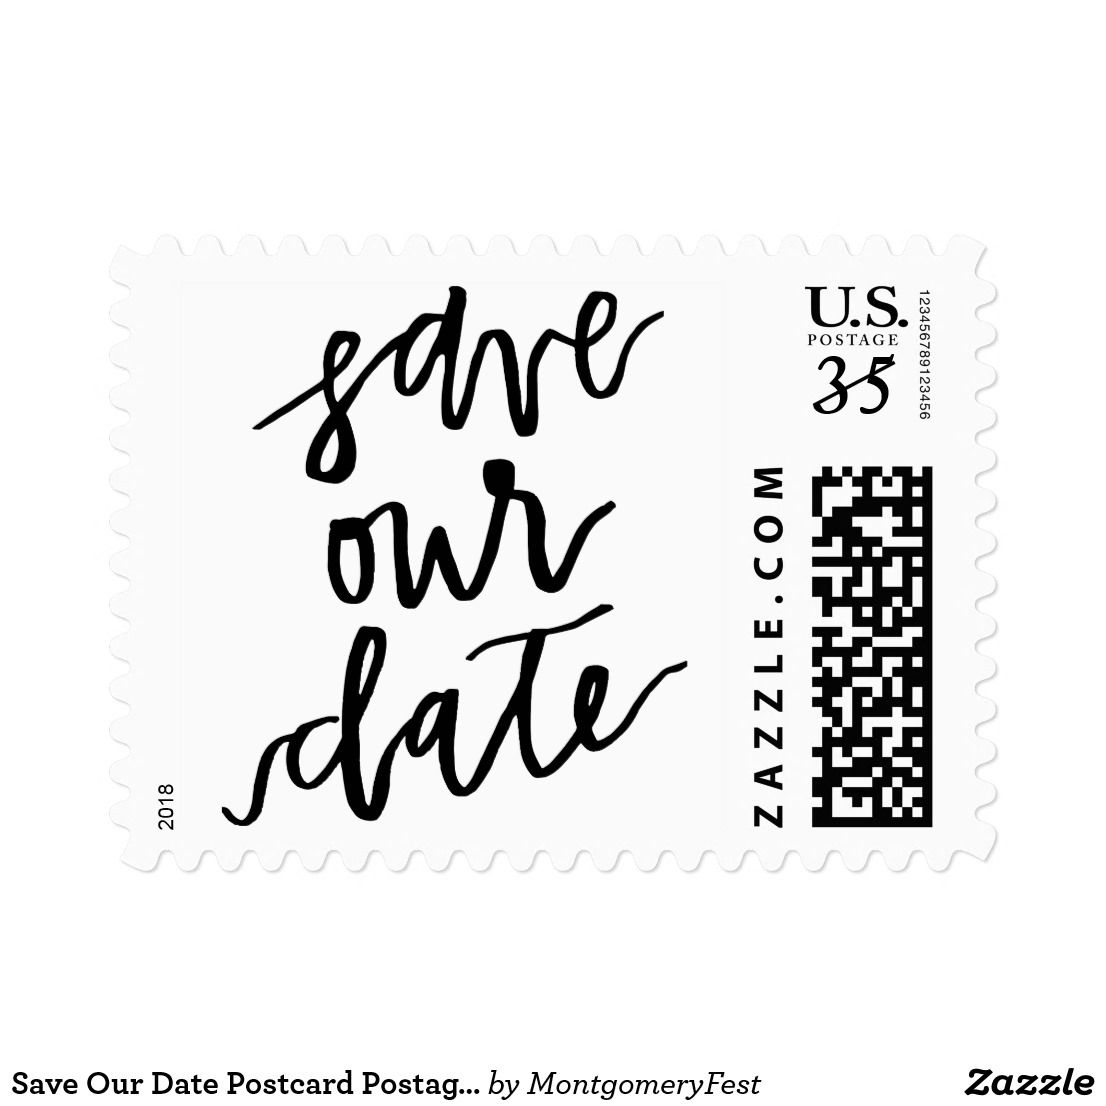 Save Our Date Postcard Postage Stamp   Invitations   Pinterest ...